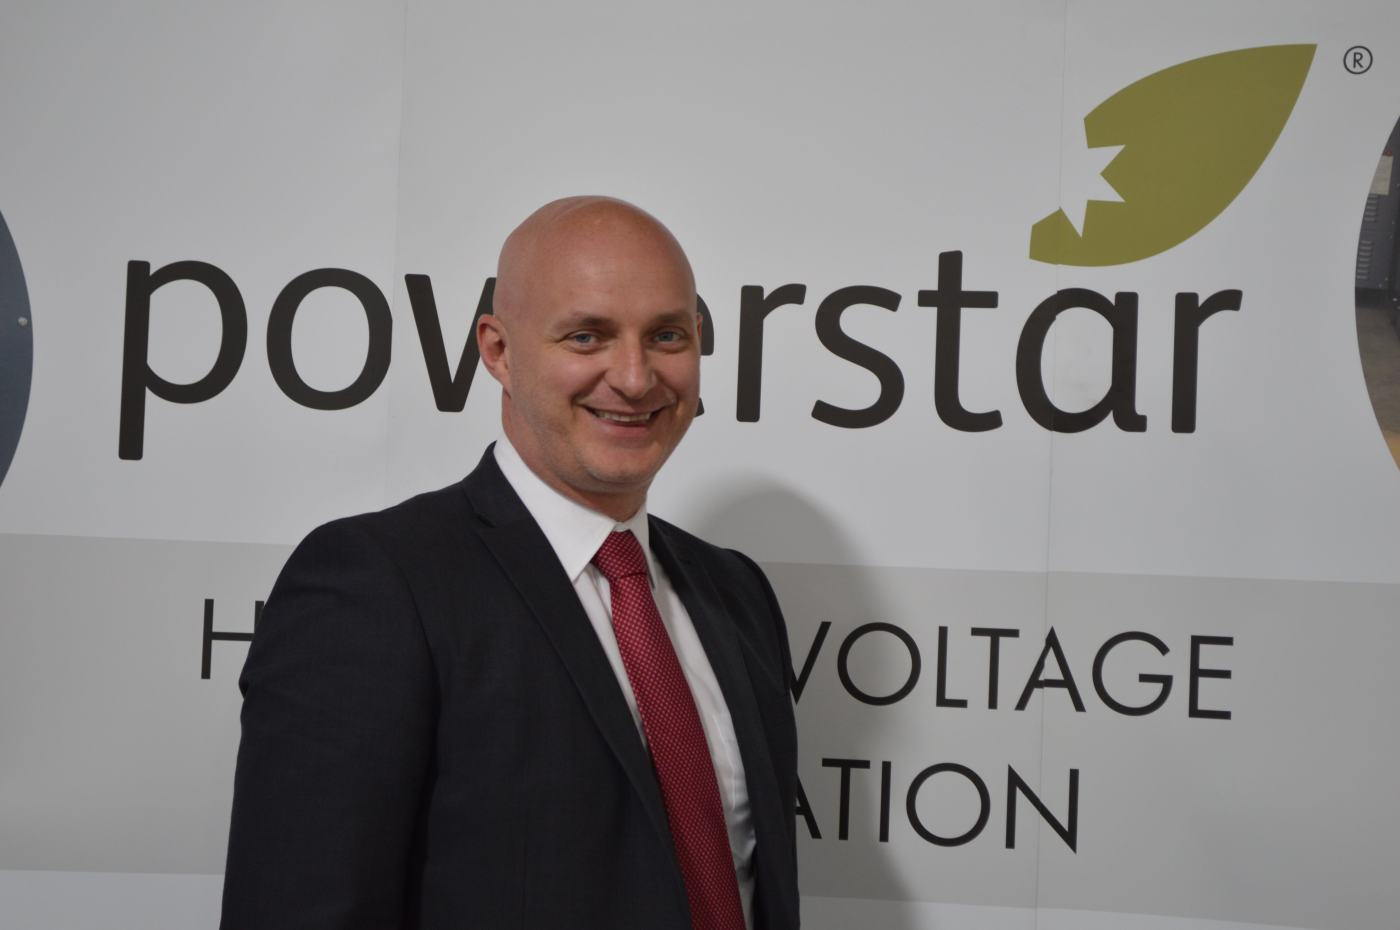 ) Lee Hudson, Chief Operating Officer at Powerstar